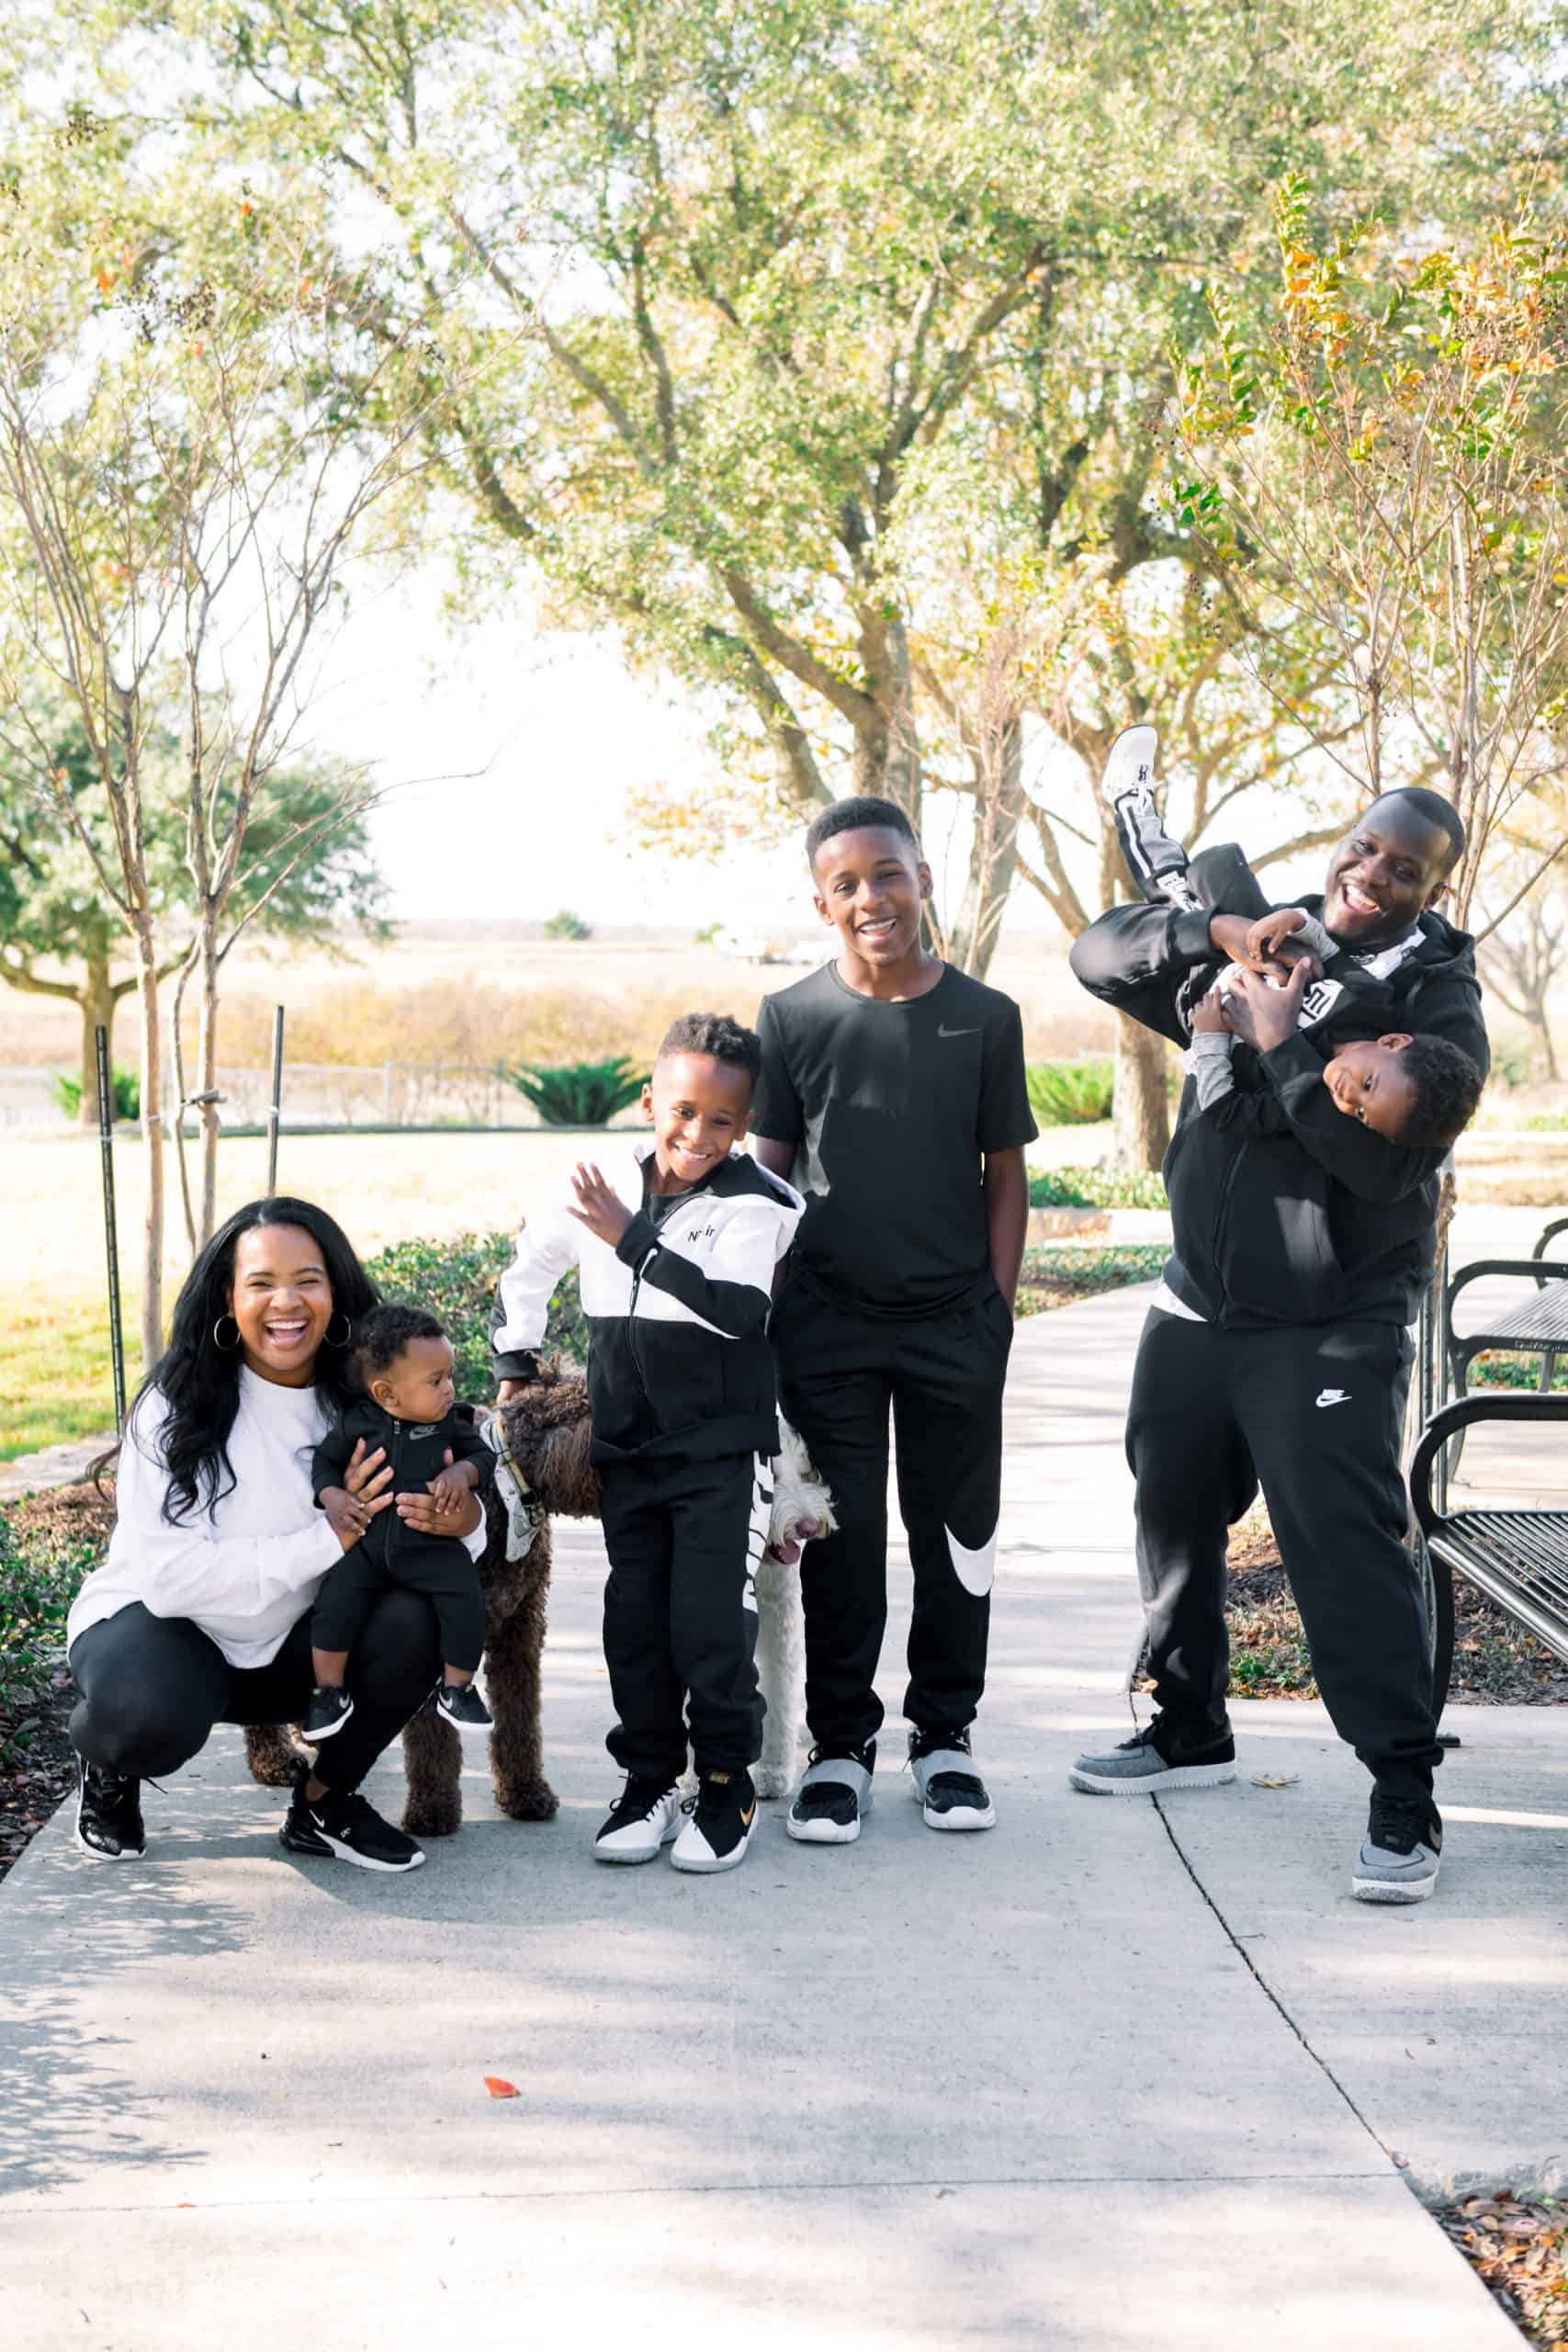 Nike Holiday by popular Dallas fashion blog, Glamorous Versatility: image of family wearing Nike gear and sitting outside at a park with their two dogs.